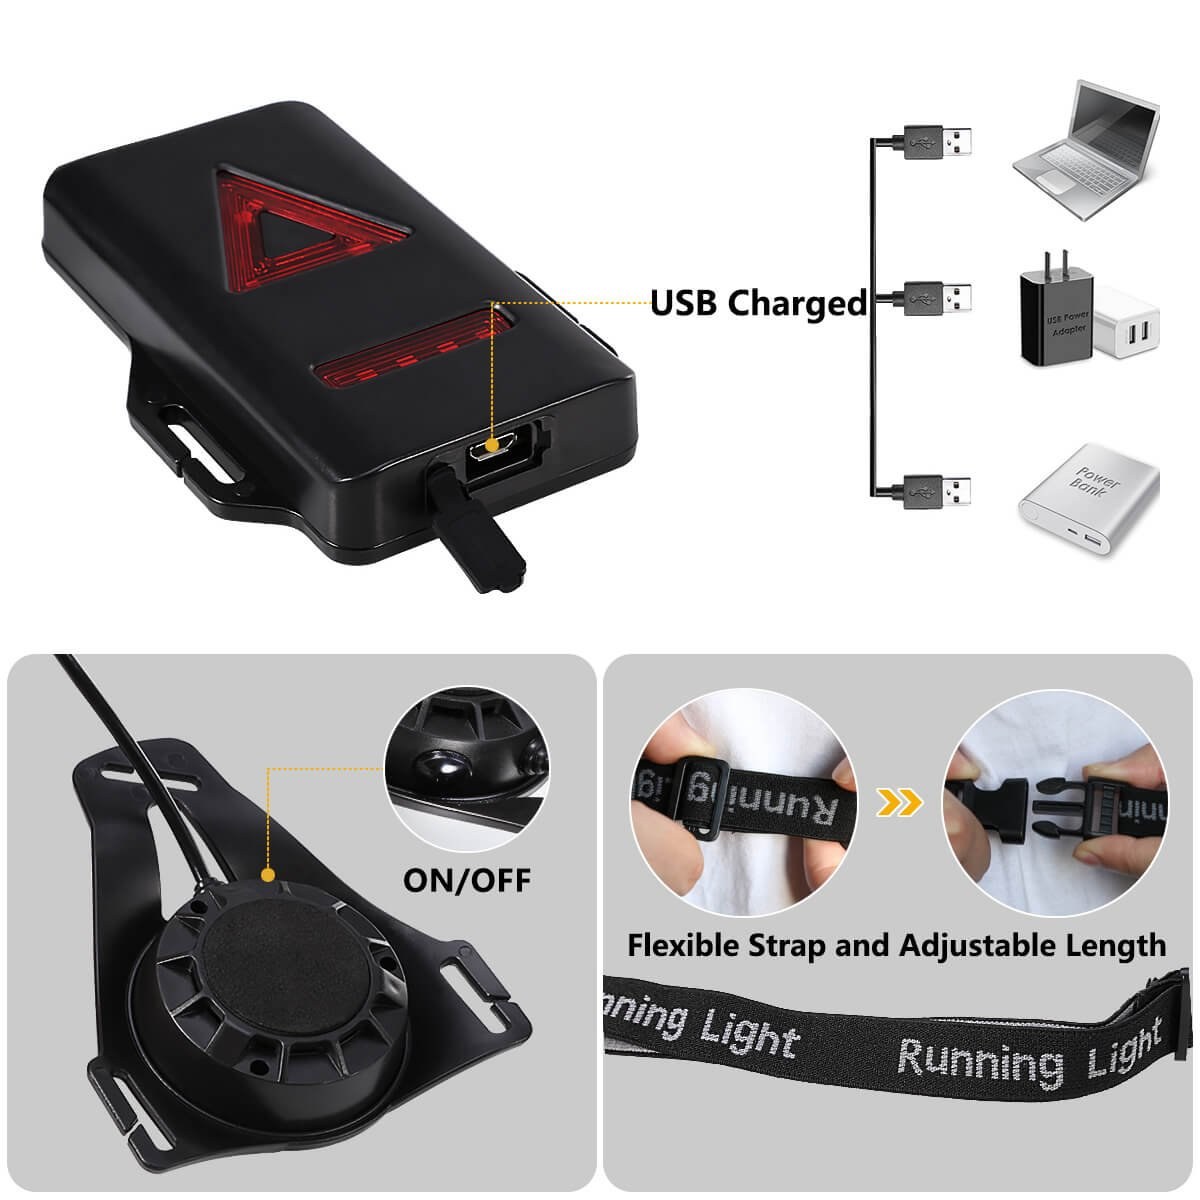 Running ALOVECO Outdoor Night Running Lights LED Chest Light Back Warning Light with Rechargeable Battery for Camping Jogging Hiking Outdoor Adventure